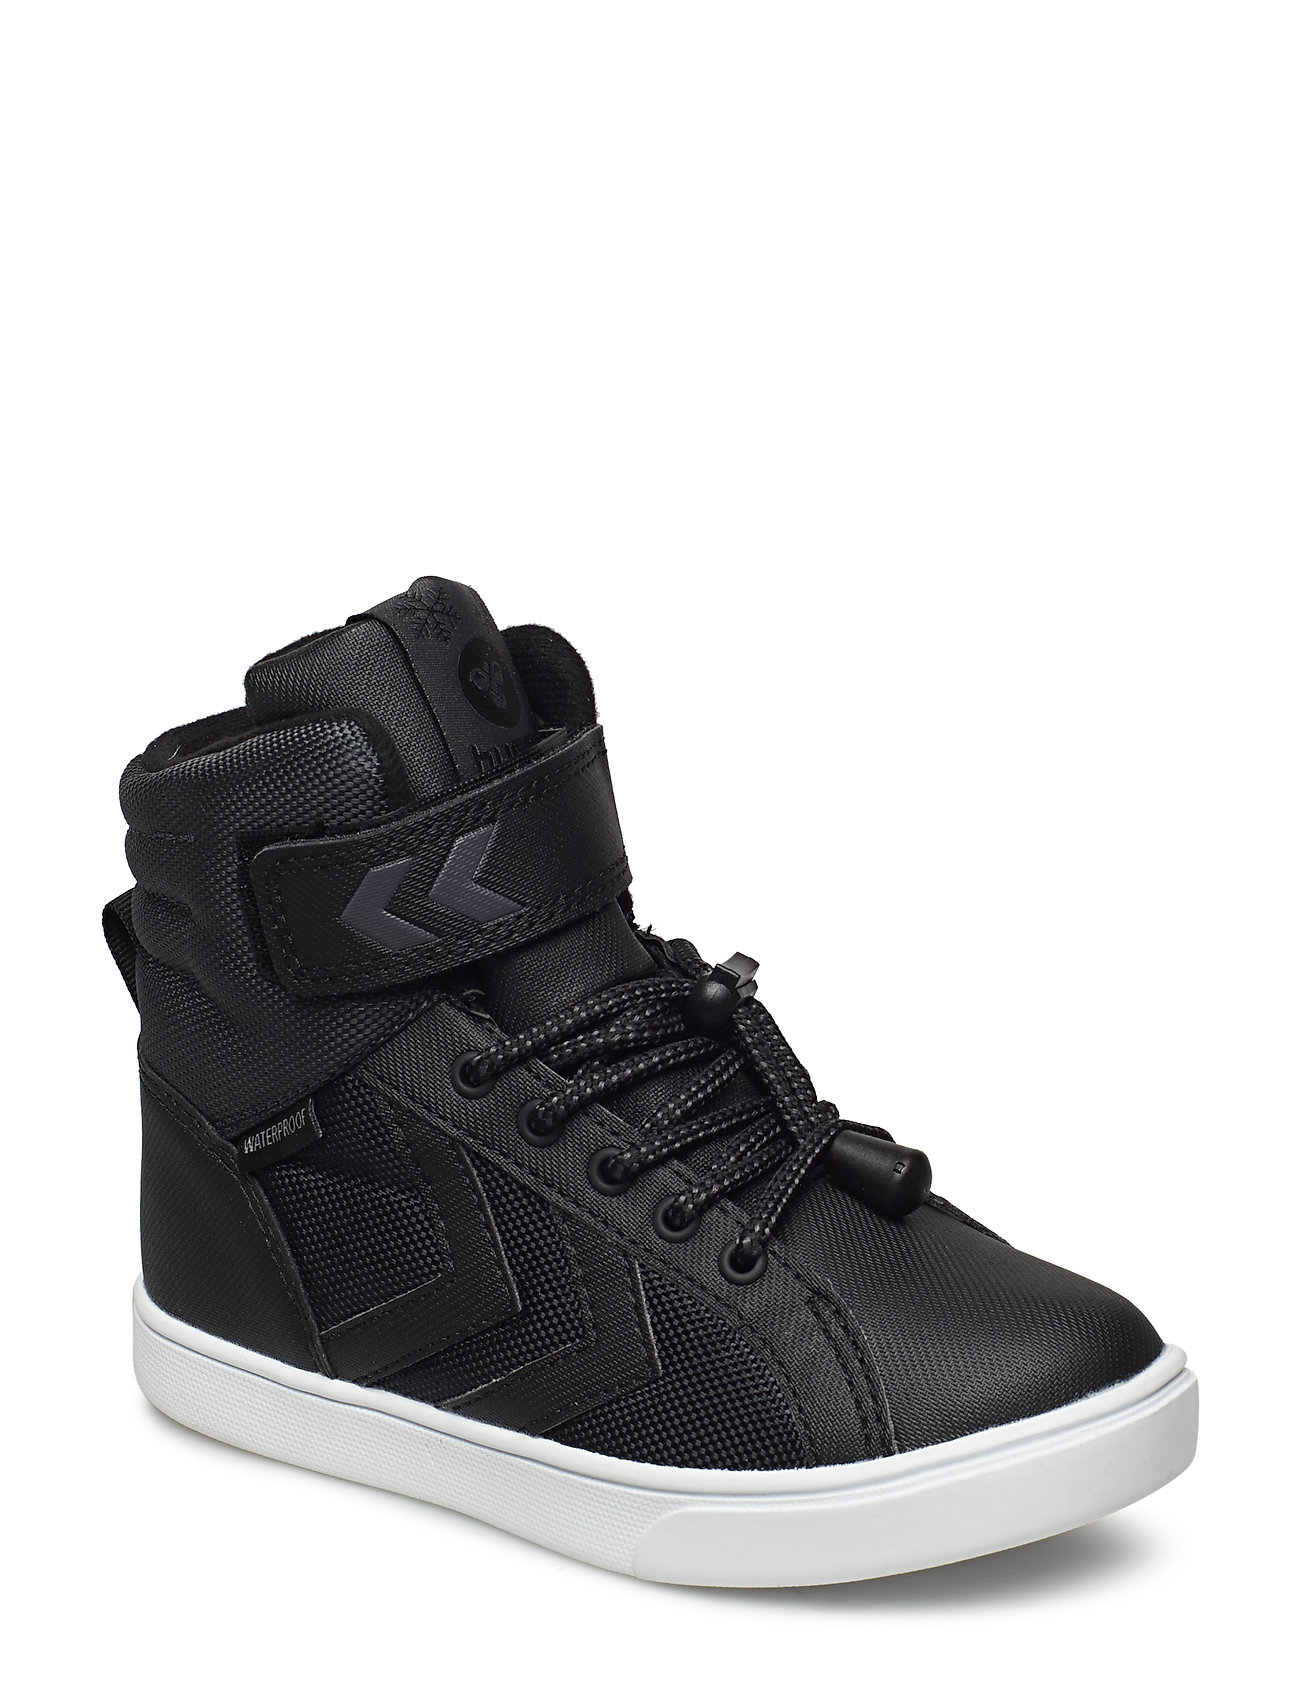 cd6ff14e701 Splash Poly Jr (Black) (£53.40) - Hummel - | Boozt.com